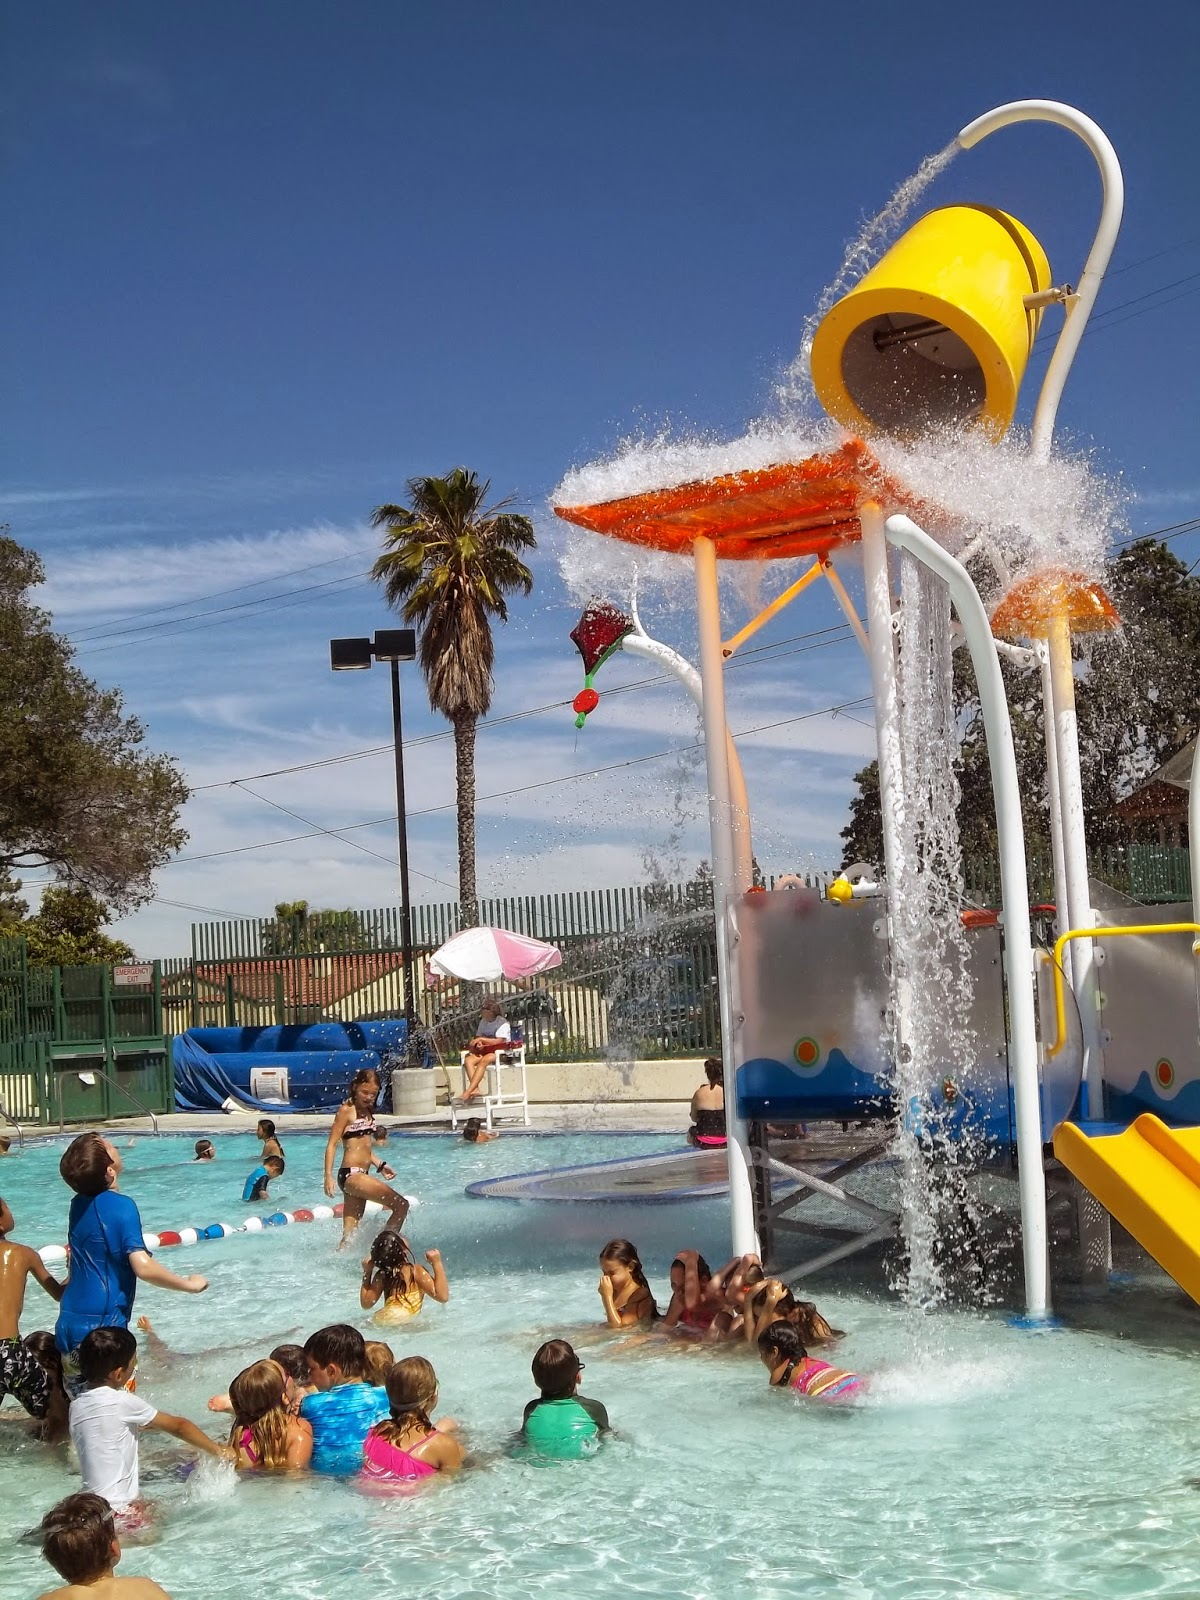 The Lemon Lady Foundation Public Swimming Pools Aquatic Parks Water Slides Contra Costa And